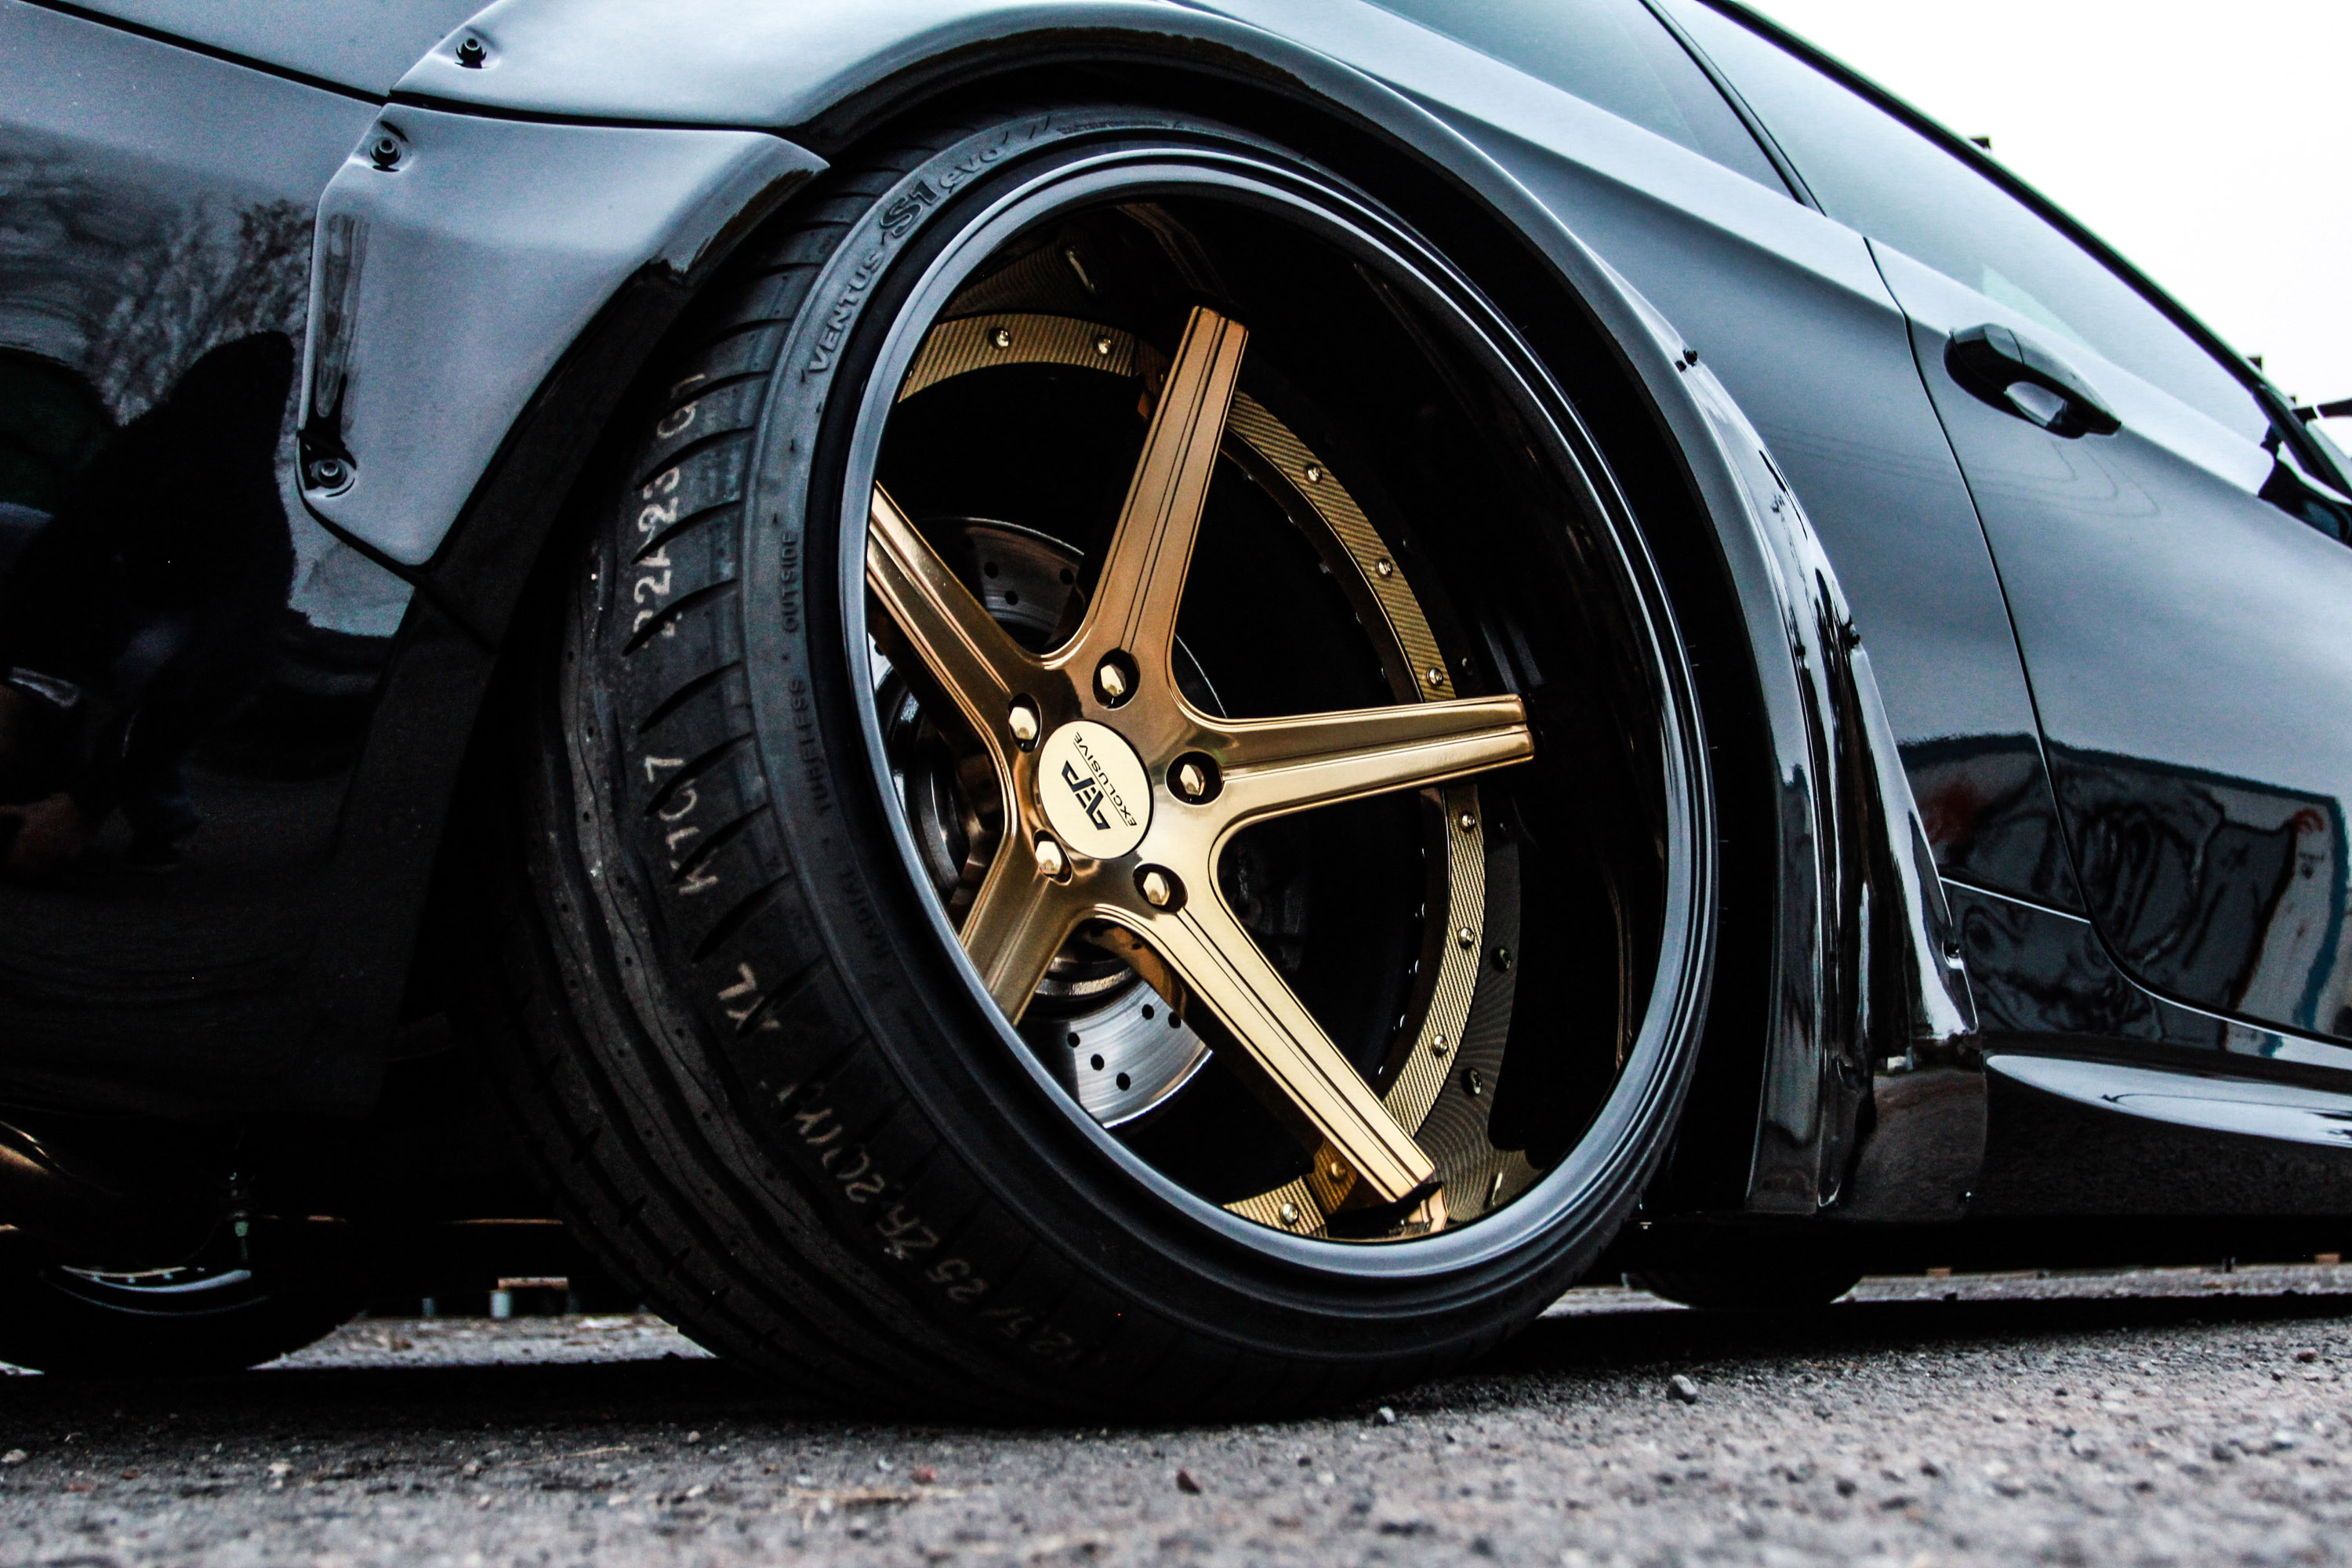 Pp Exclusive And Liberty Walk Unite For Monstrous Bmw M3